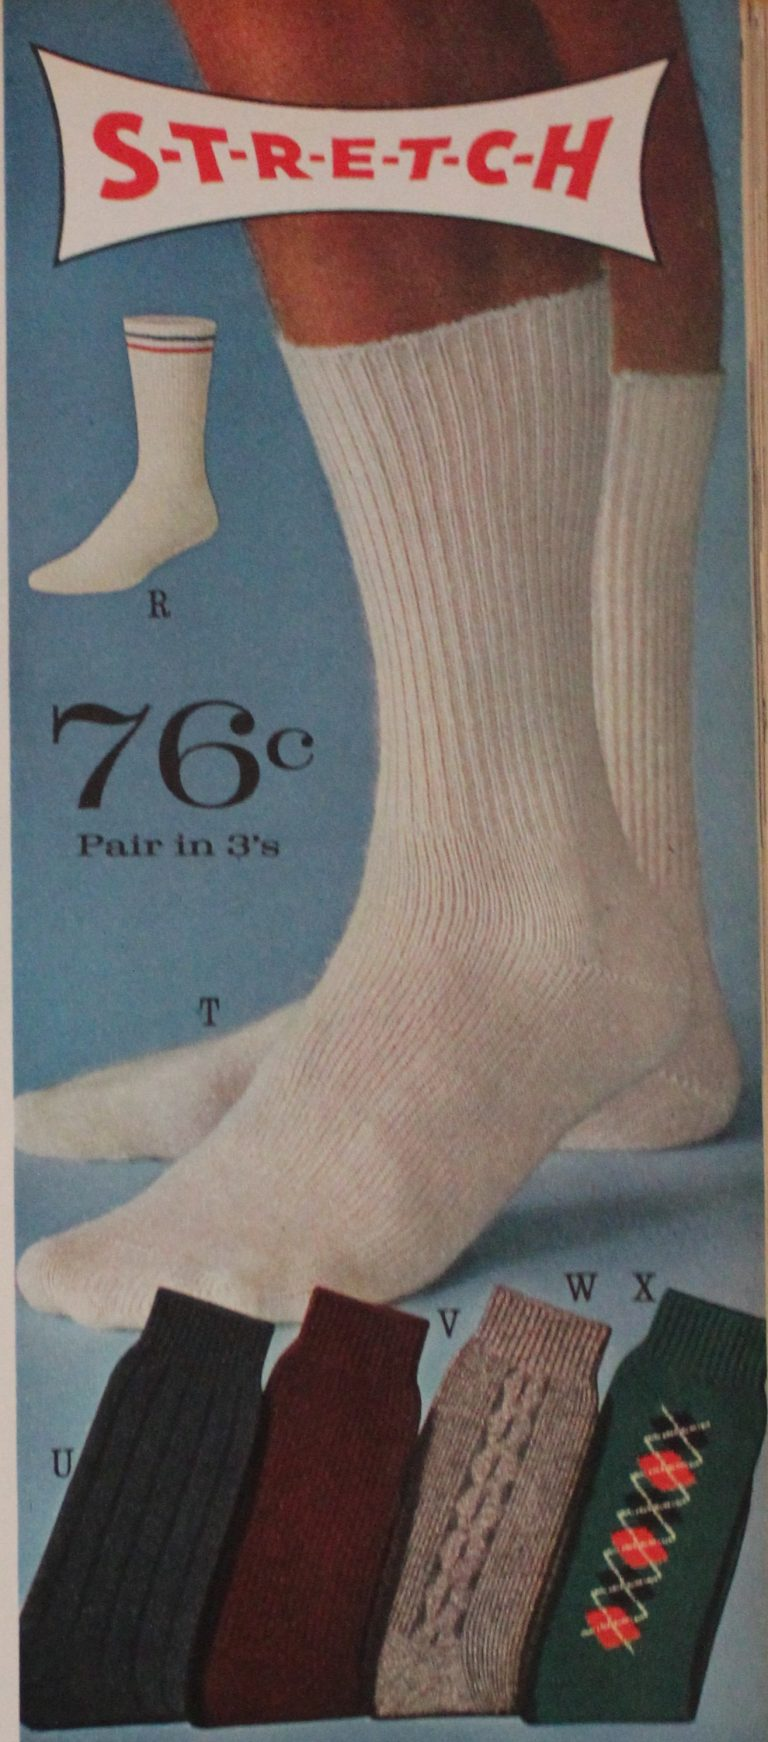 1961 The everyday white sock that we all have come to love was introduced.